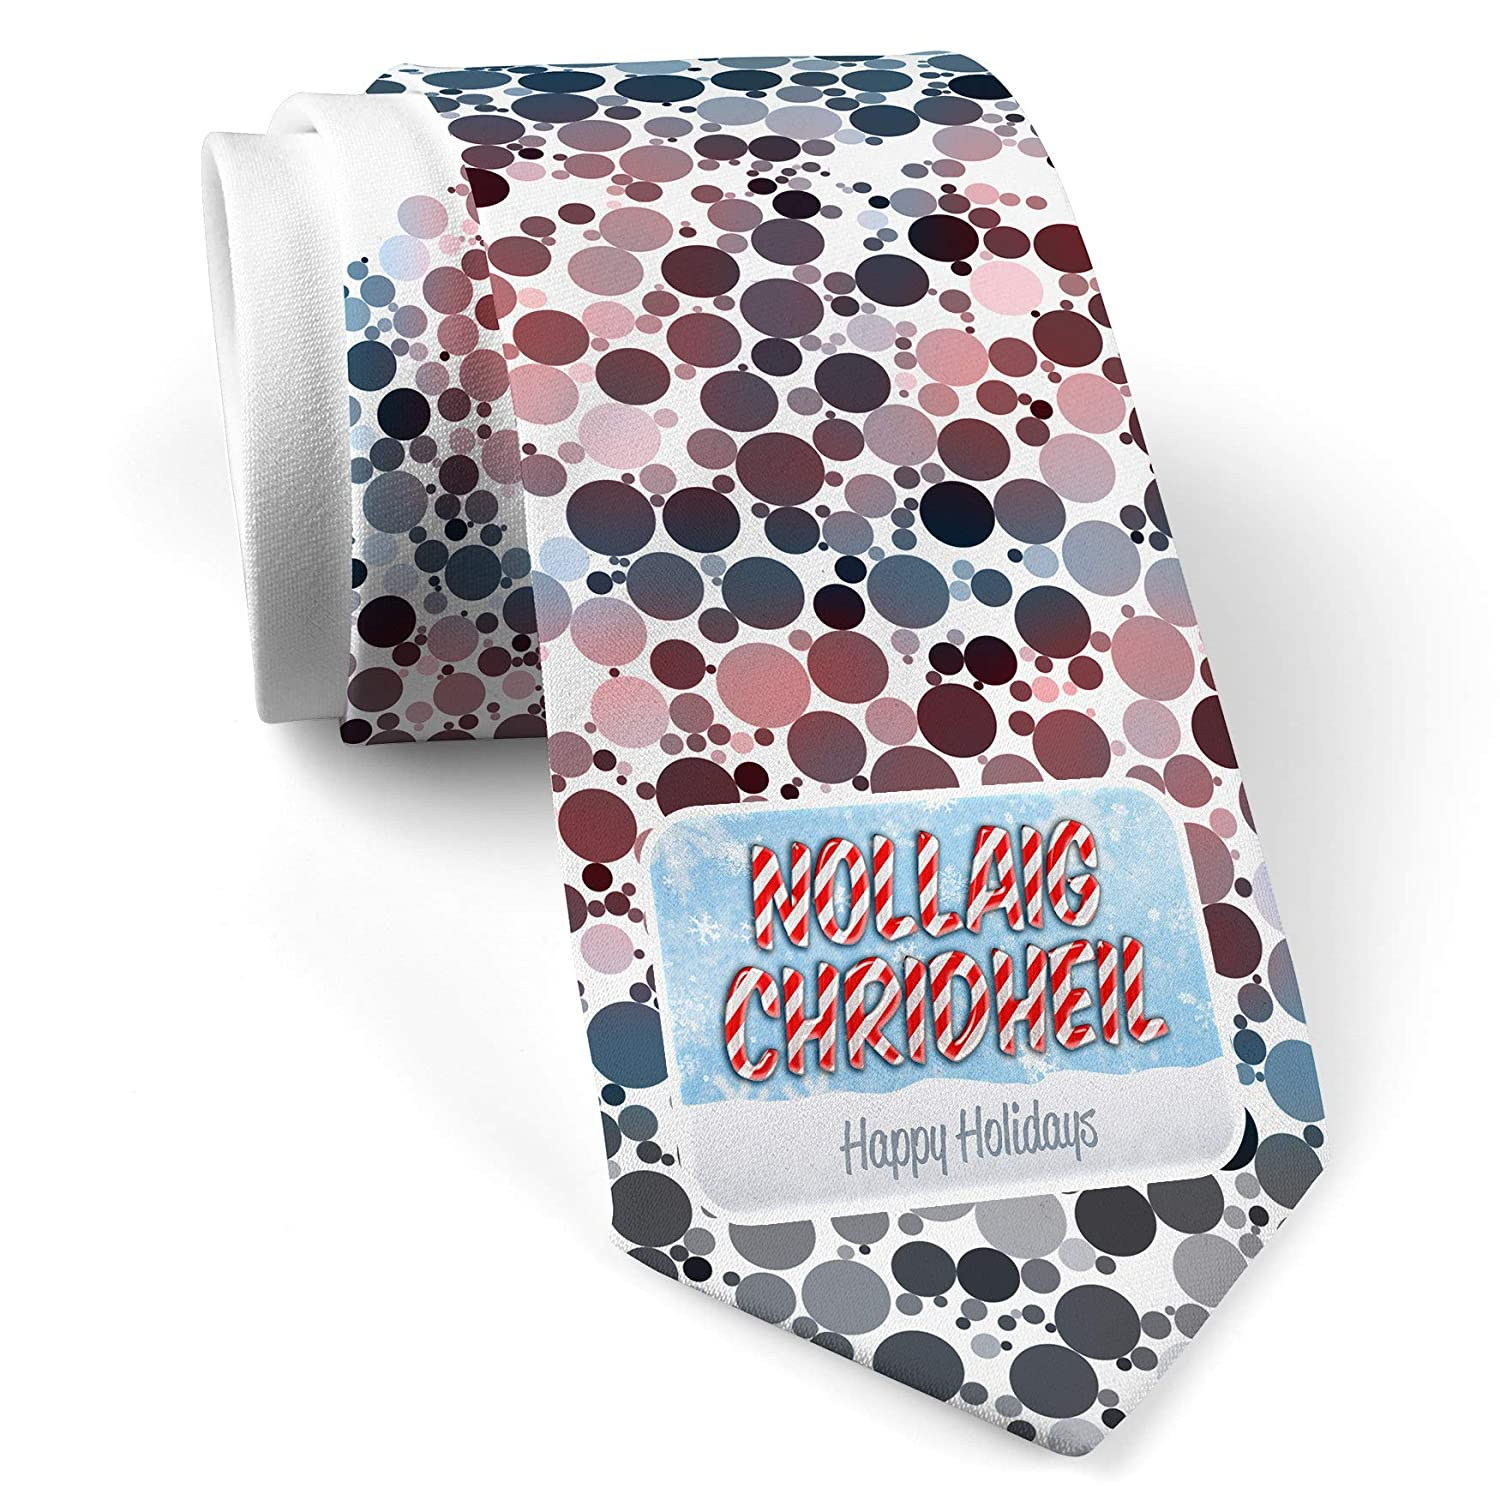 Christmas In Color.Neck Tie With Merry Christmas In Scottish Gaelic From